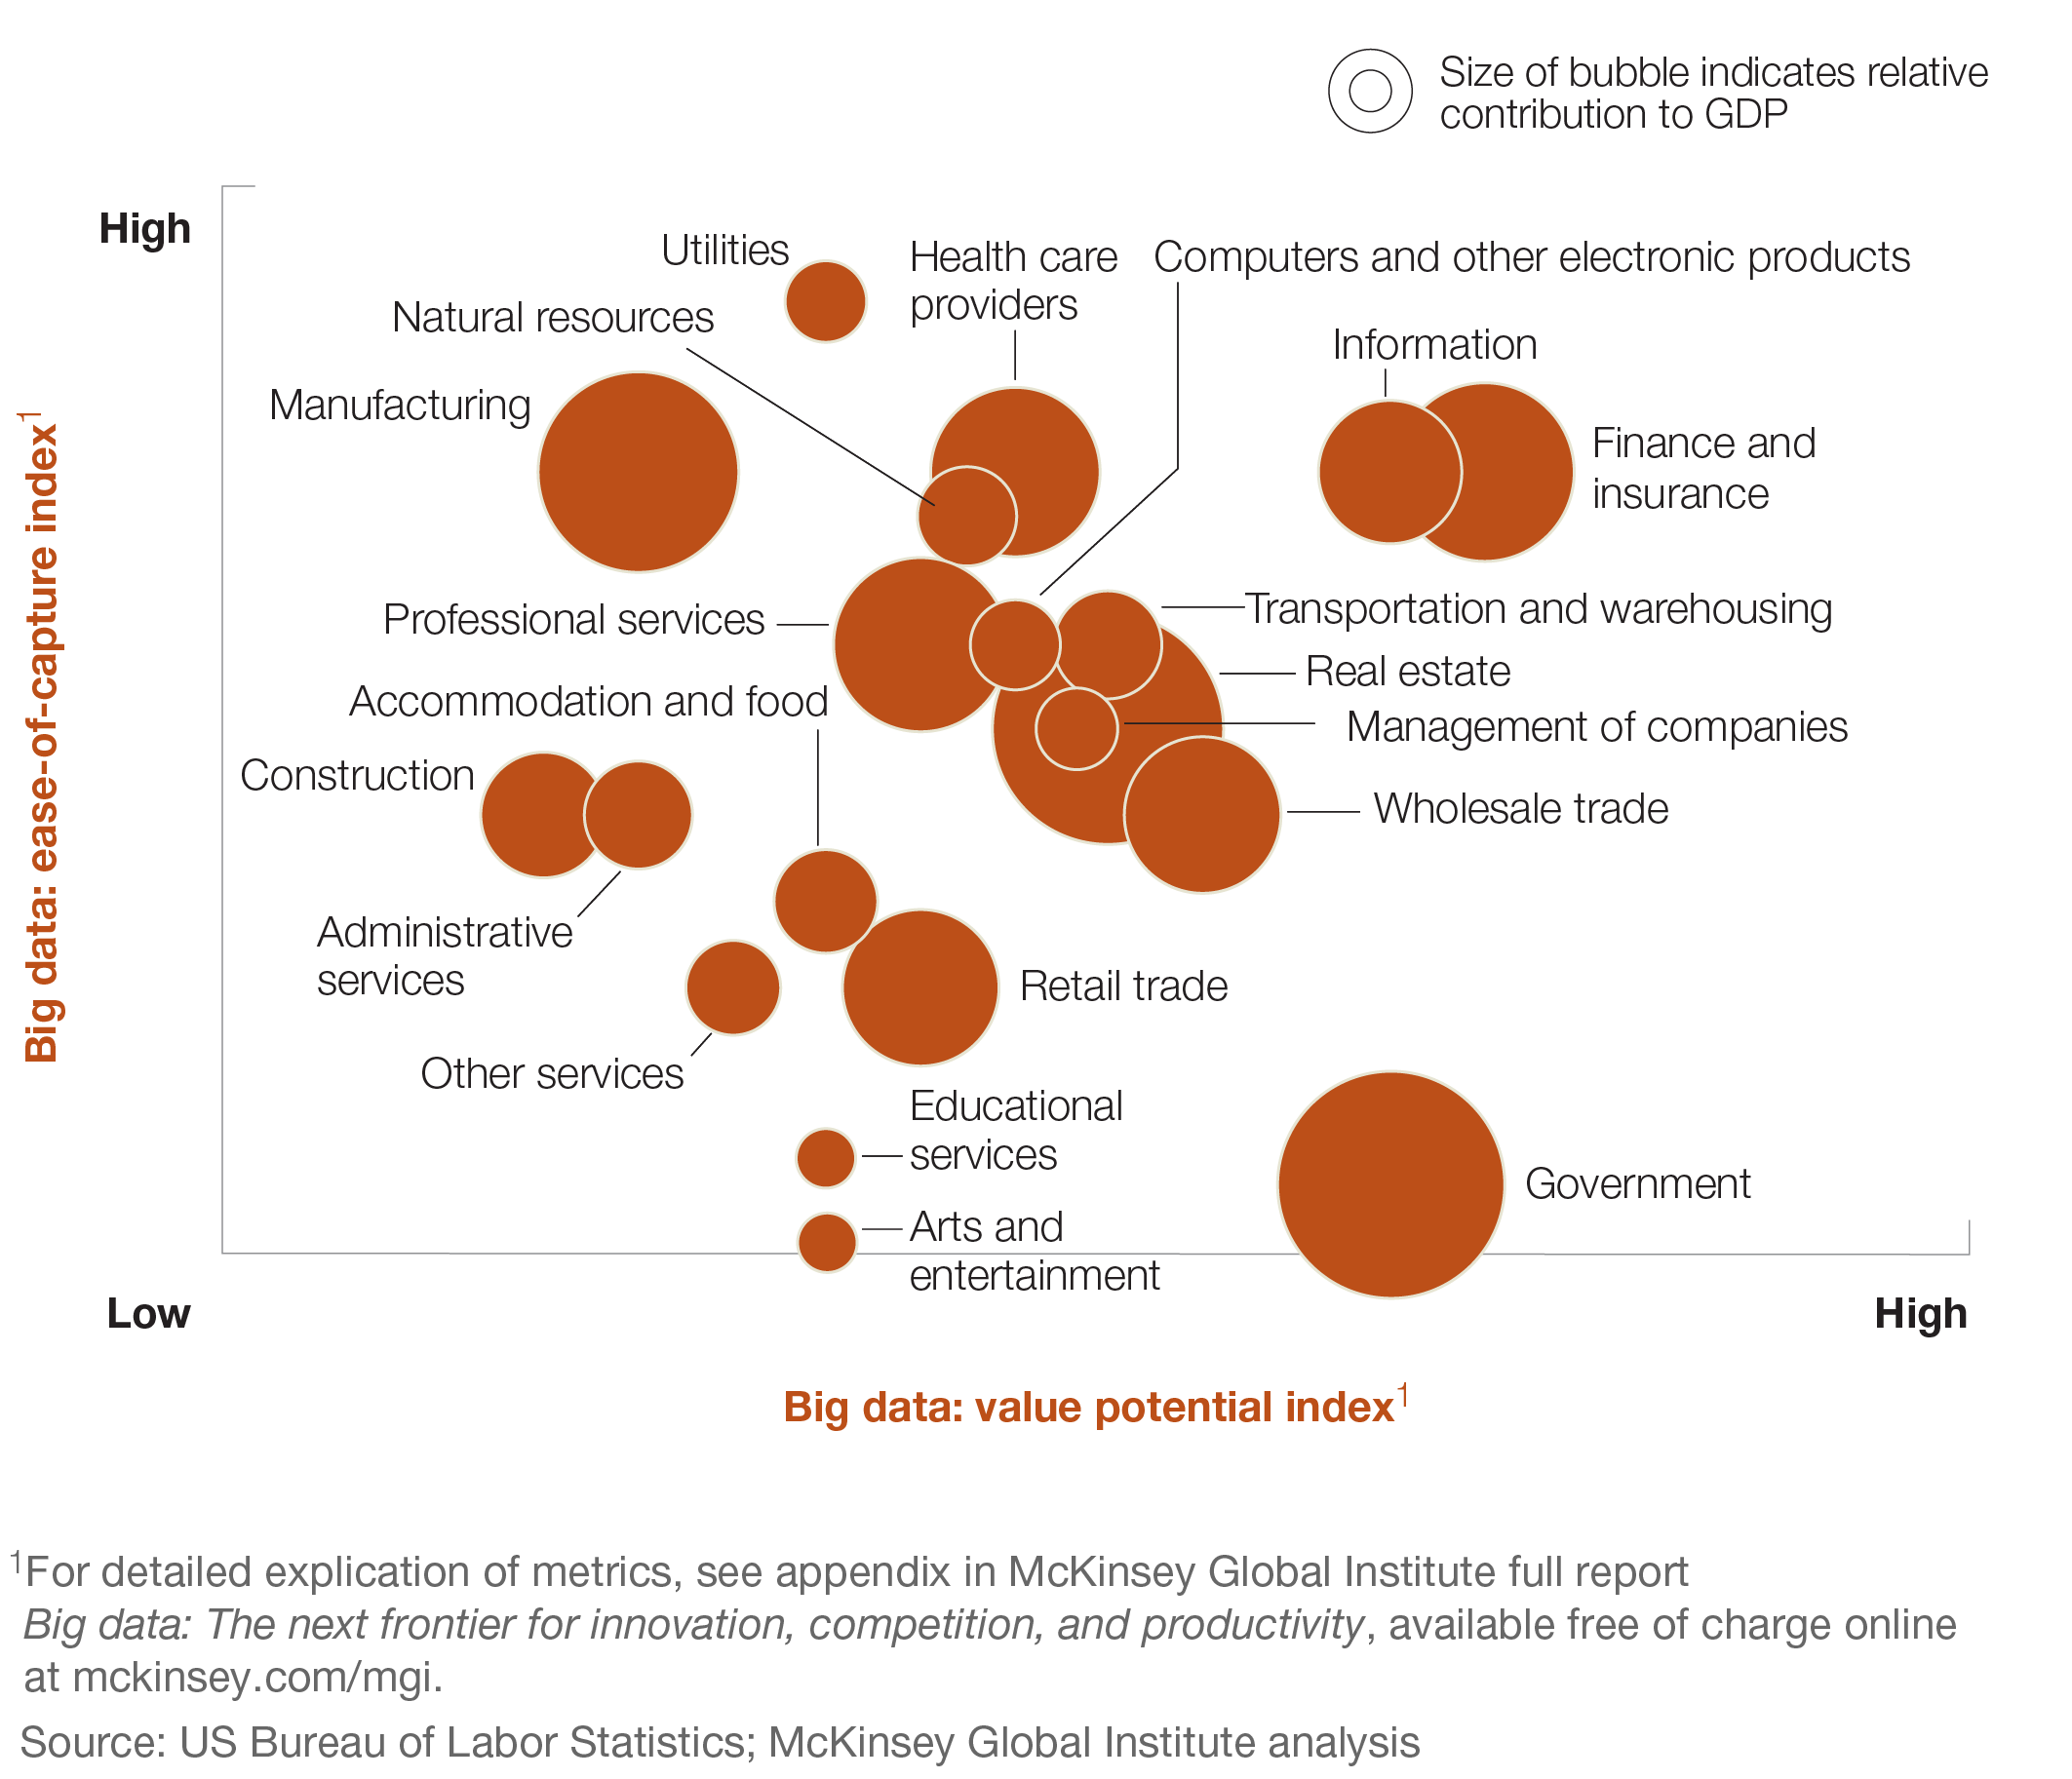 Mckinsey Updates Estimates Of Big Data Potential Value